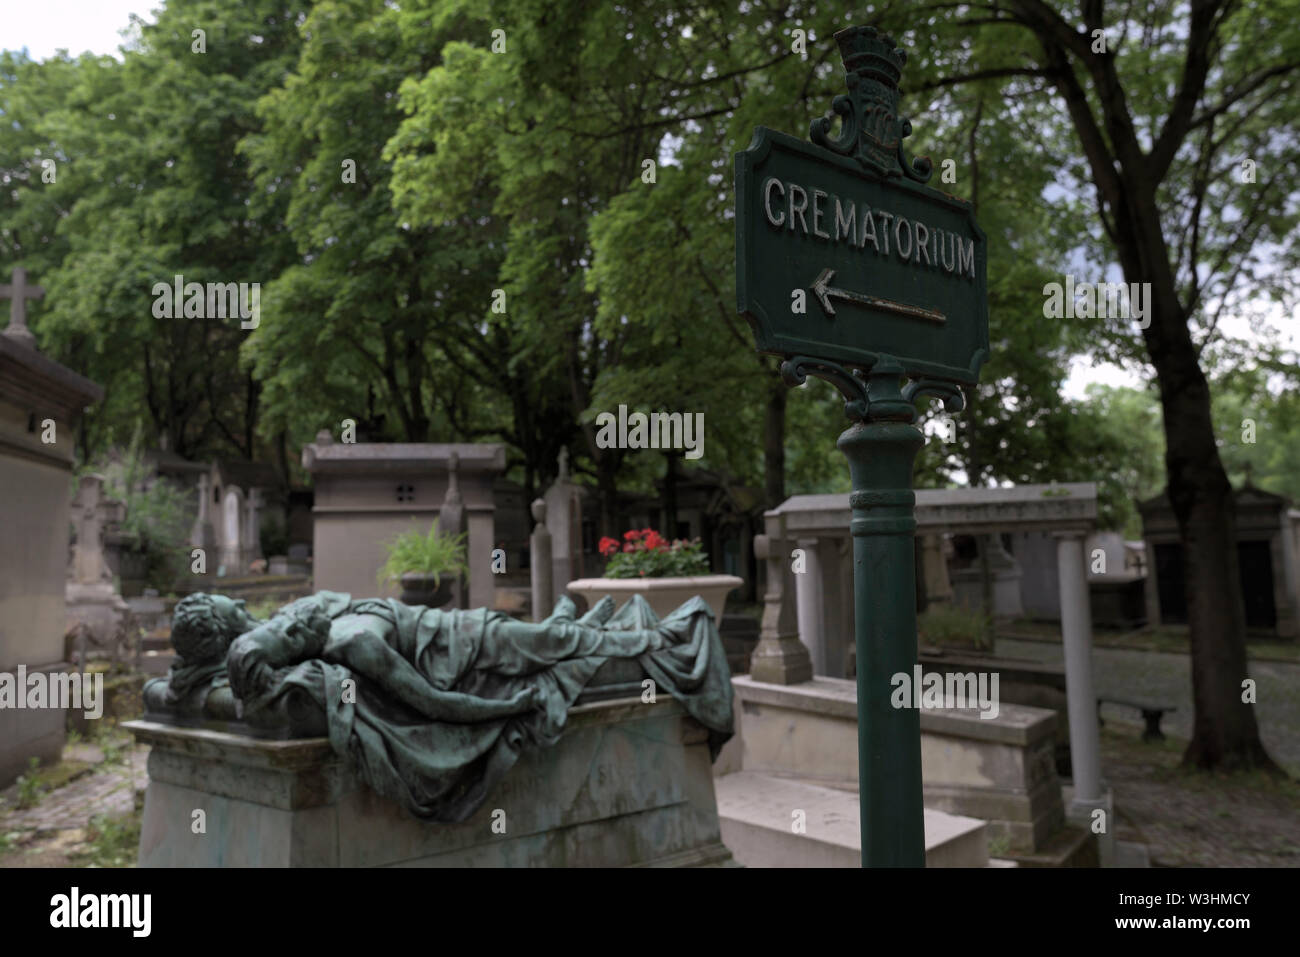 crematory sign at the Pere Lachaise Cemetery, Paris, France - Stock Image